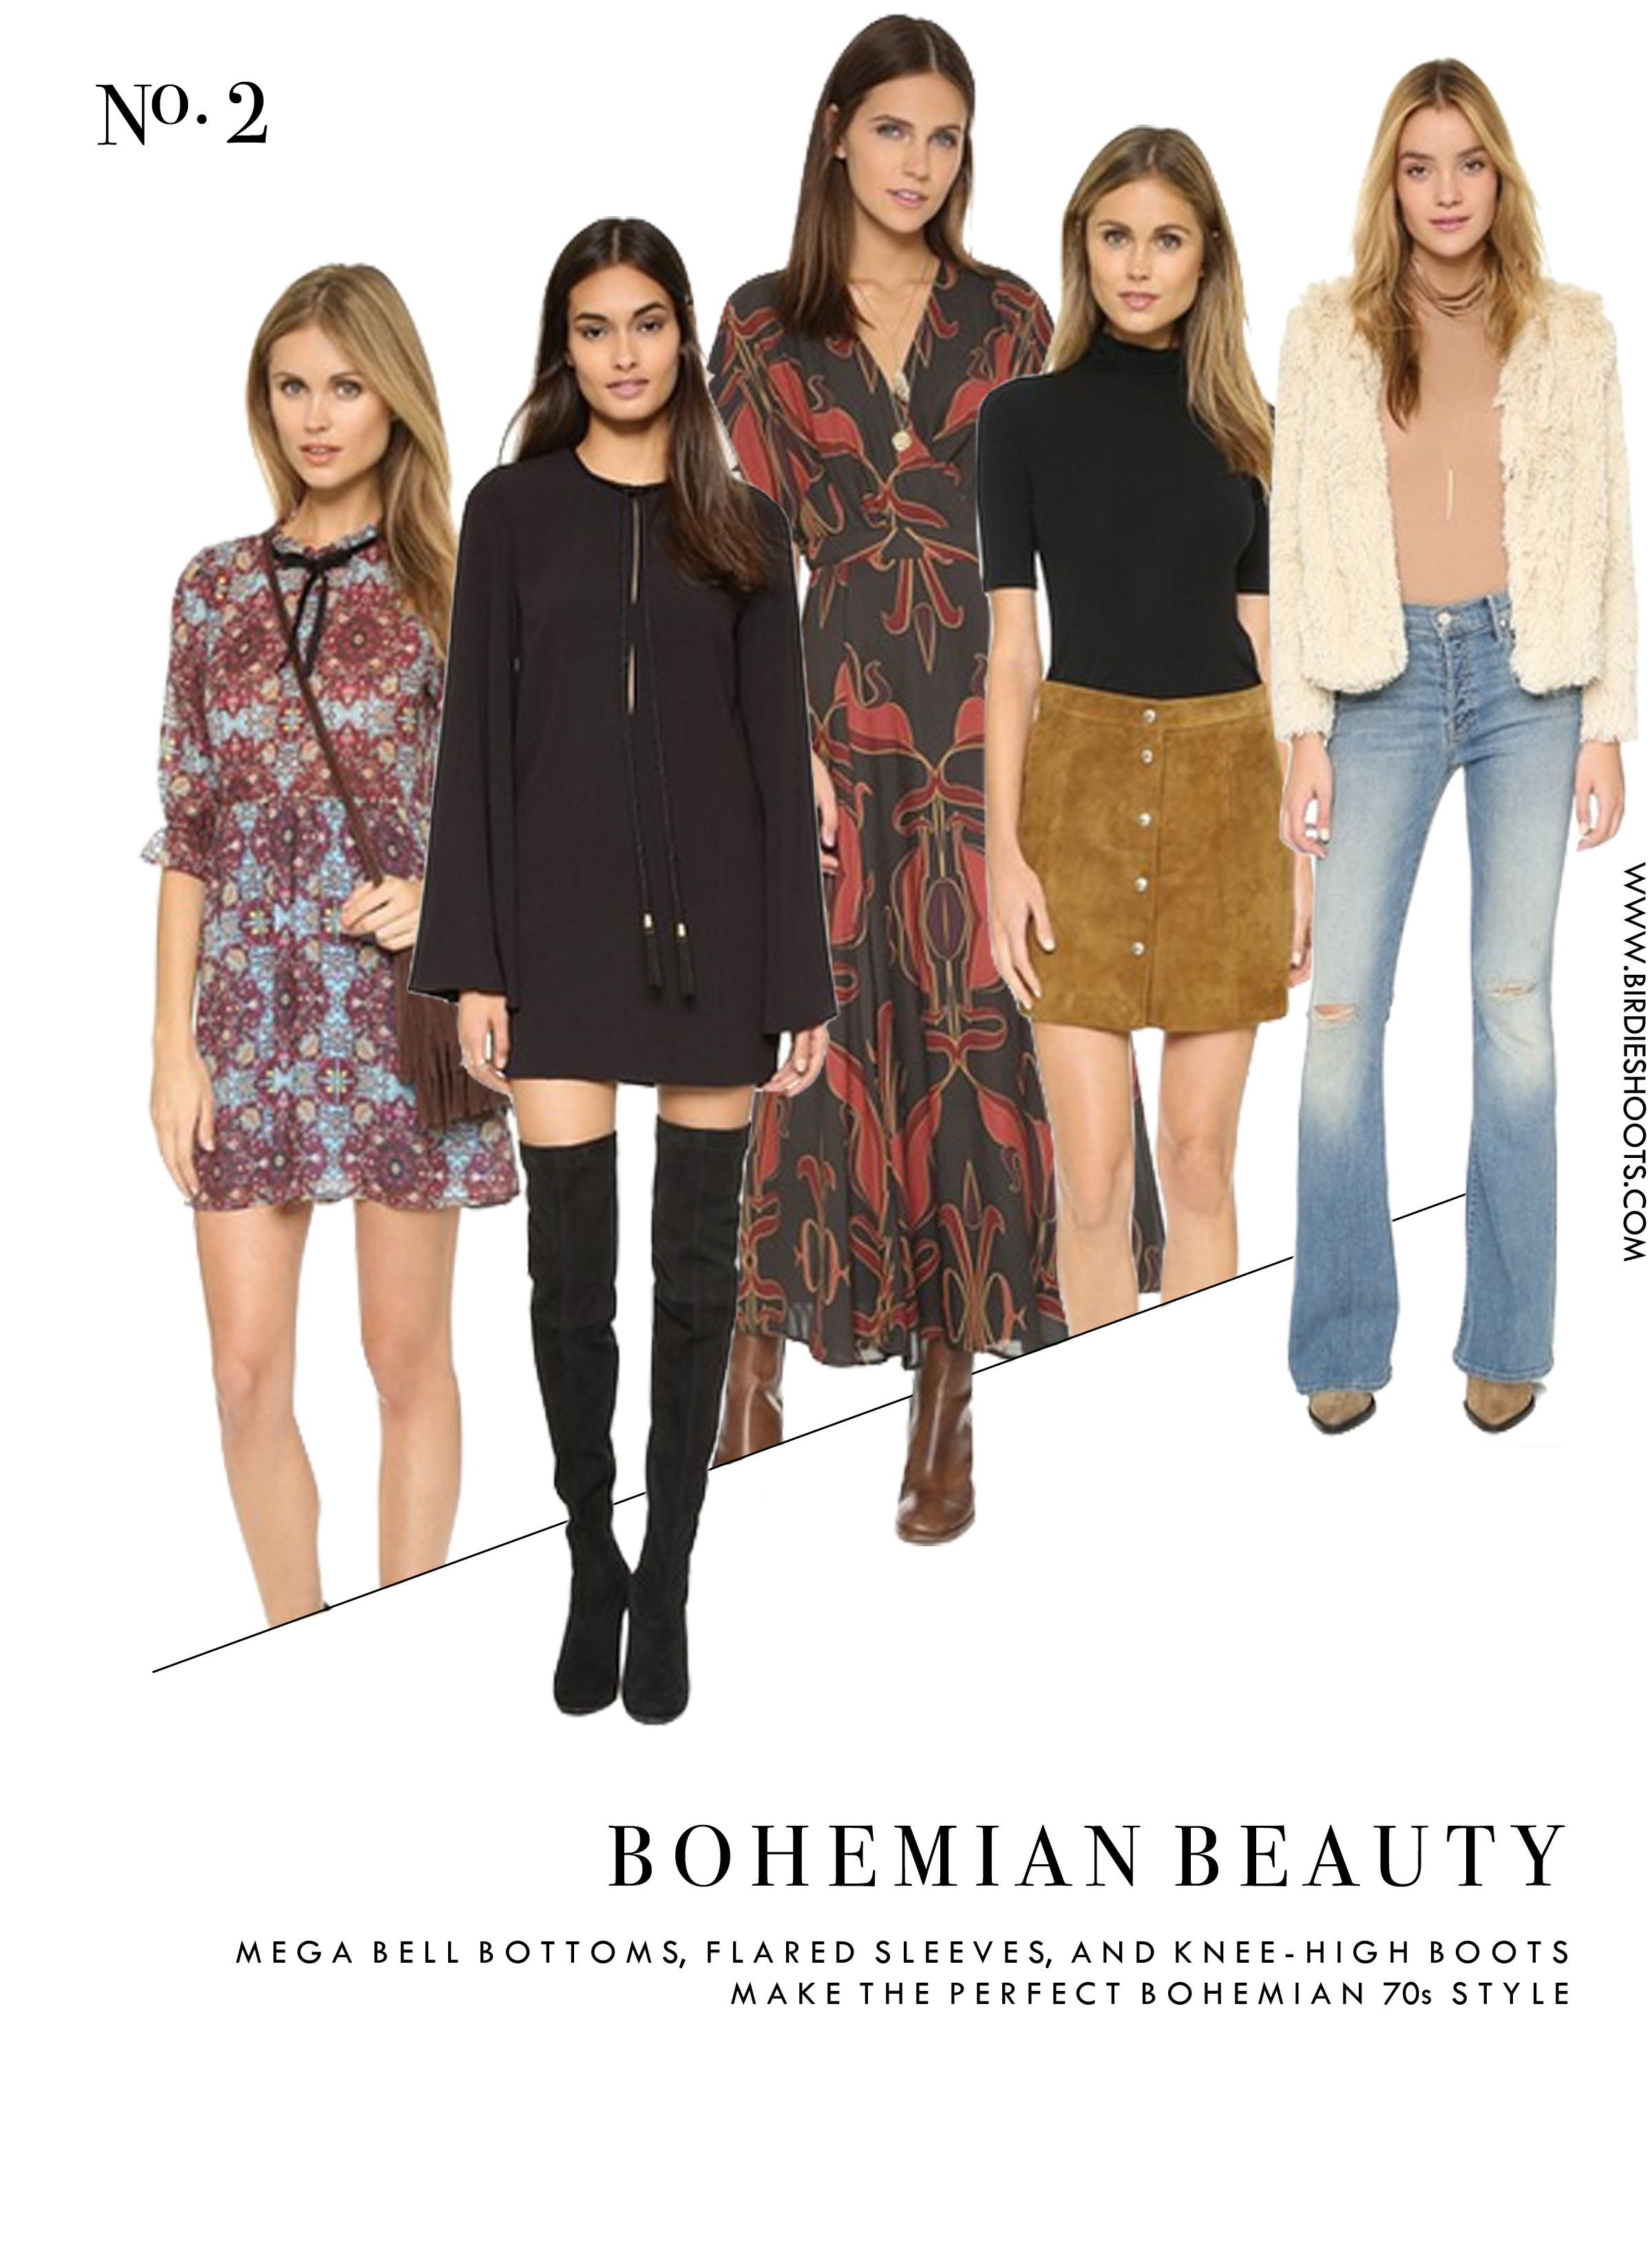 Must buy items from the Shopbop Sale via. Birdie Shoots